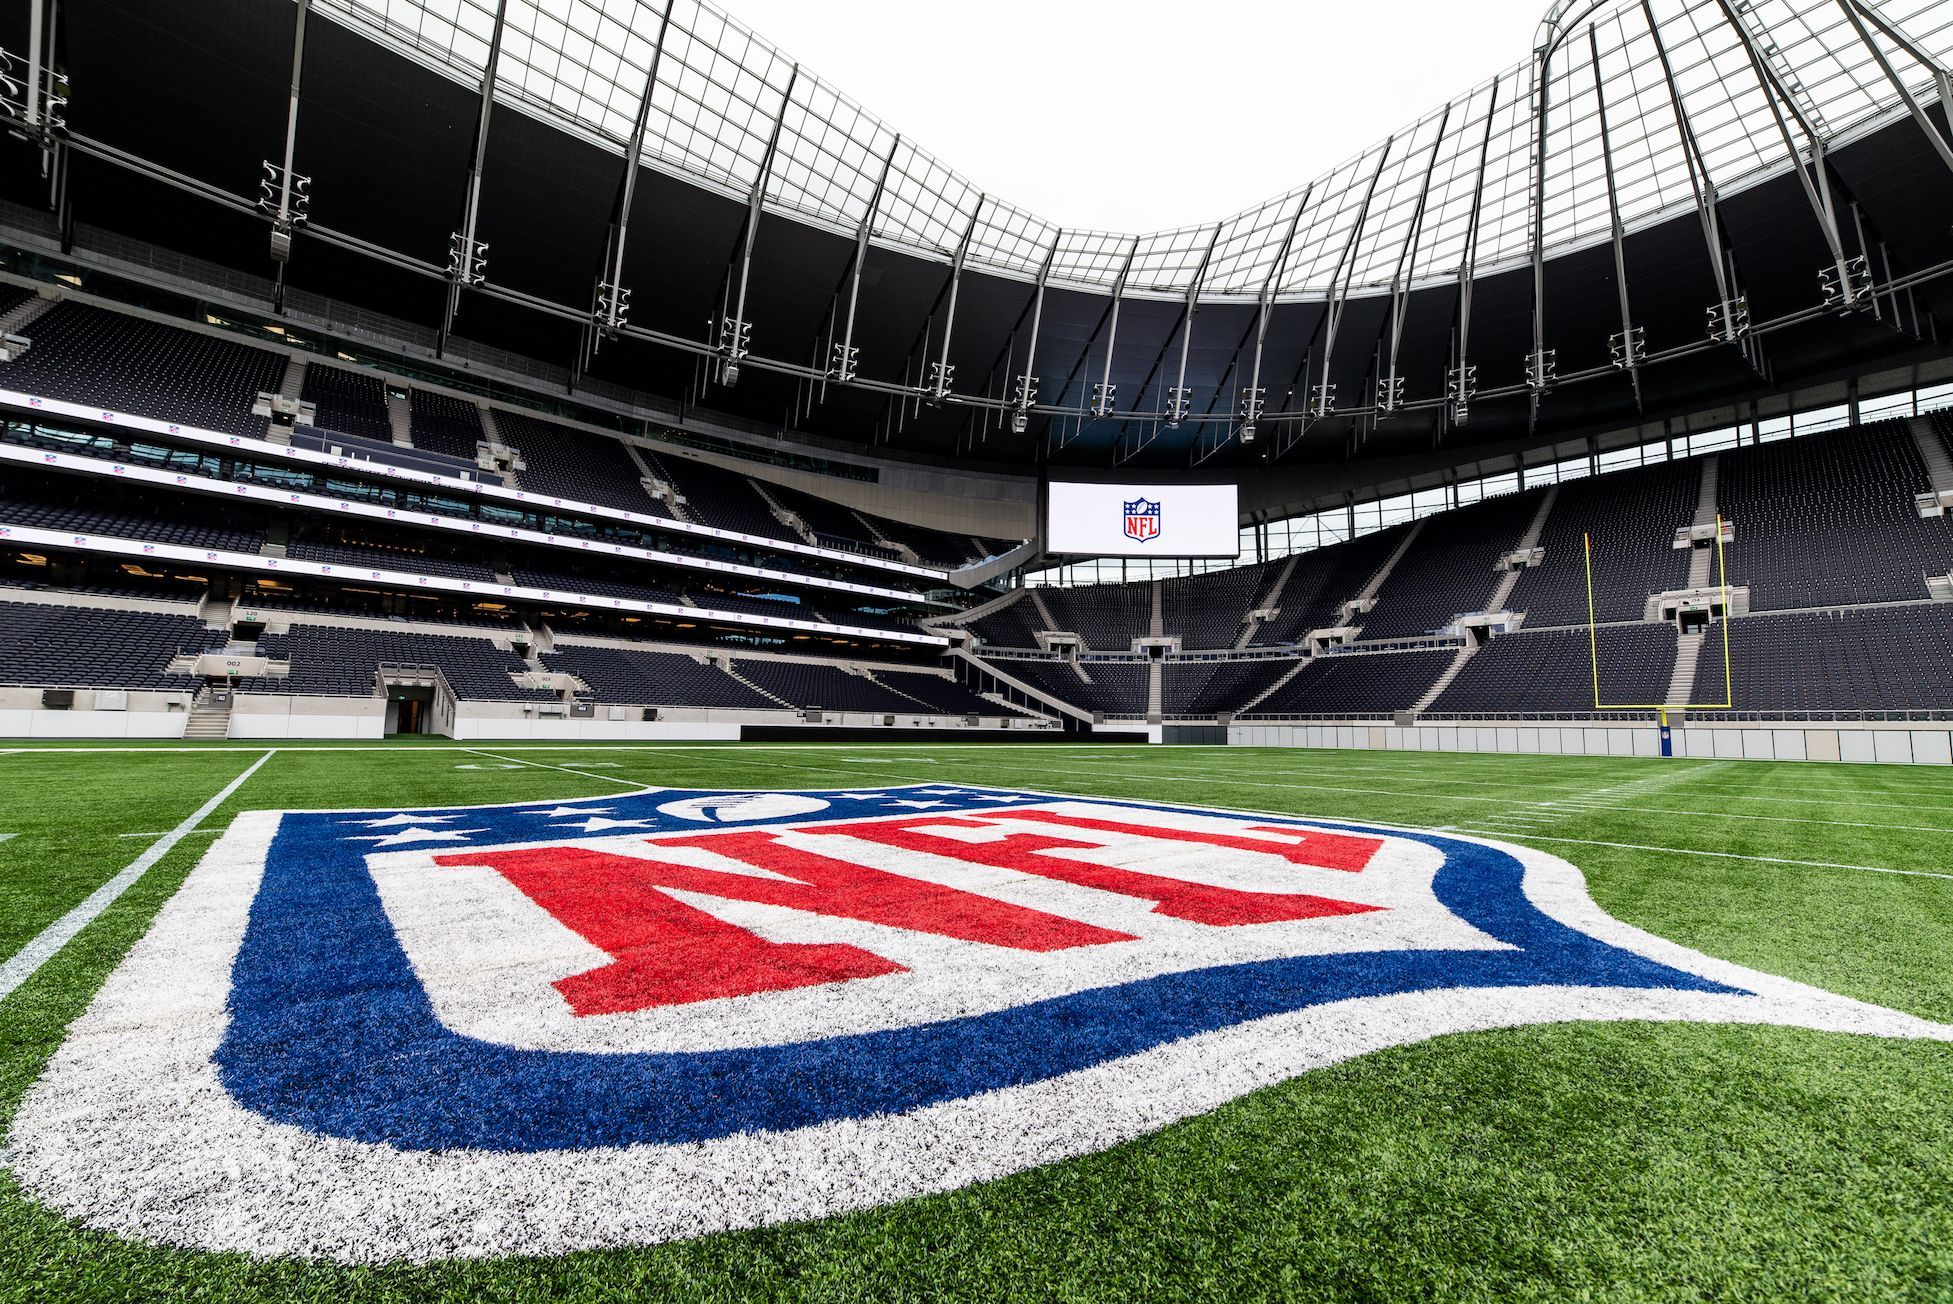 Nfl Franchise In London History Practicality Popularity